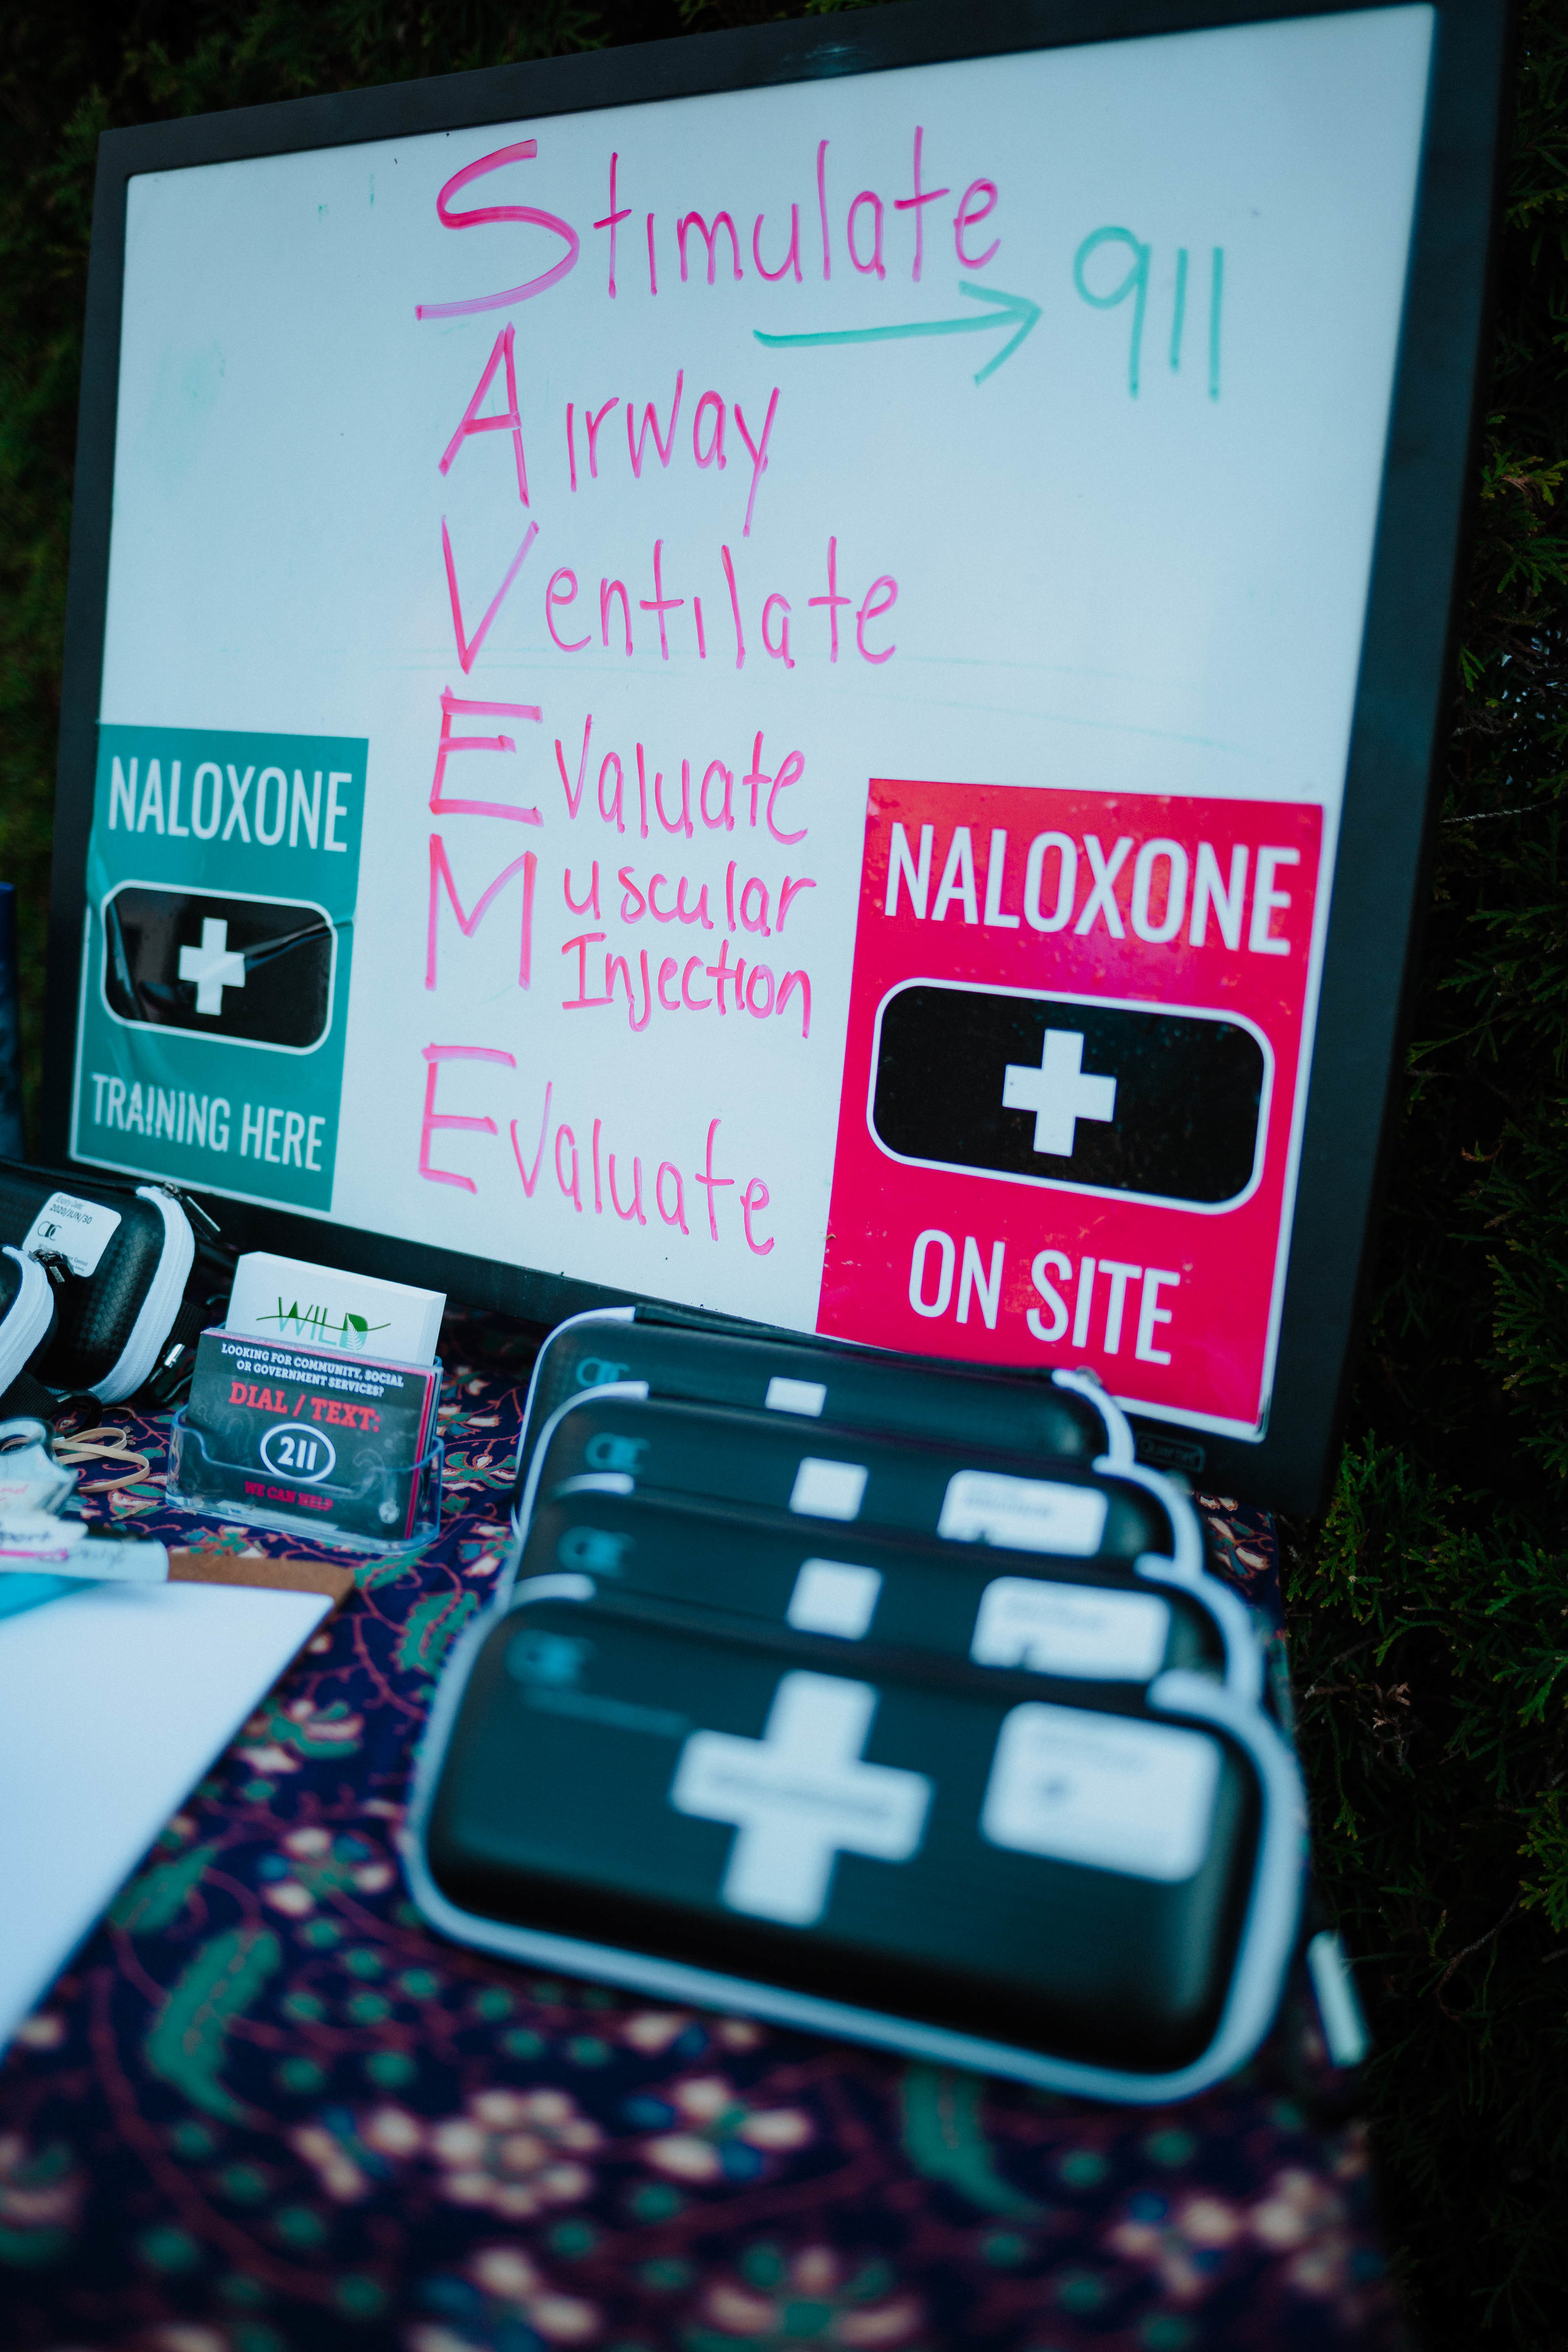 WILD trains all of their employees, volunteers and peers who are wanting to equip themselves, with how to use a naloxone kit. Naloxone is a medication used to block the effects of opioids, especially in overdose and when trained, everyone is capable of admitting.